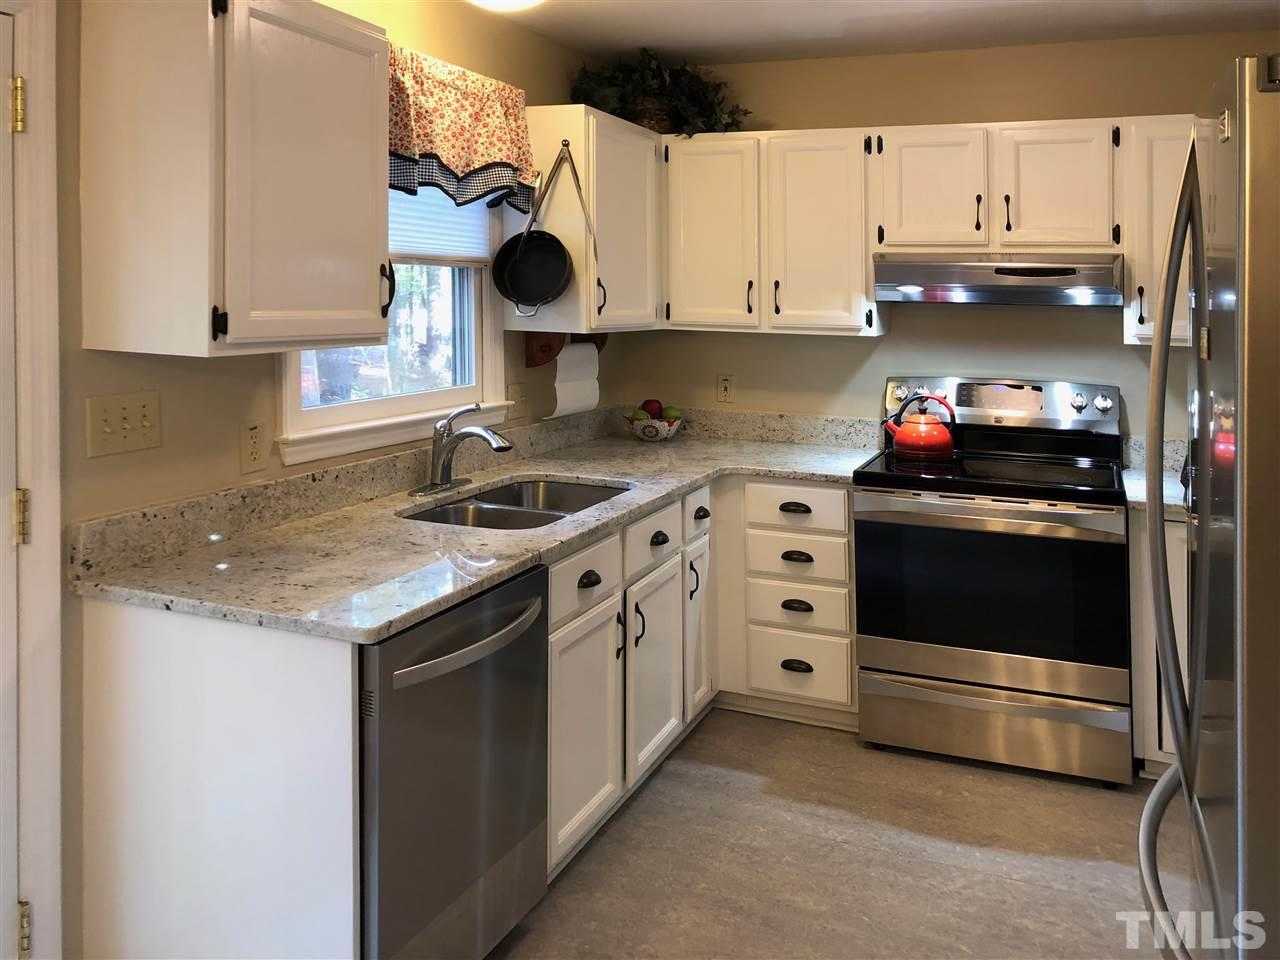 Kitchen recently renovated with granite countertops. Stainless steel appliances and Marmoleum eco friendly flooring.